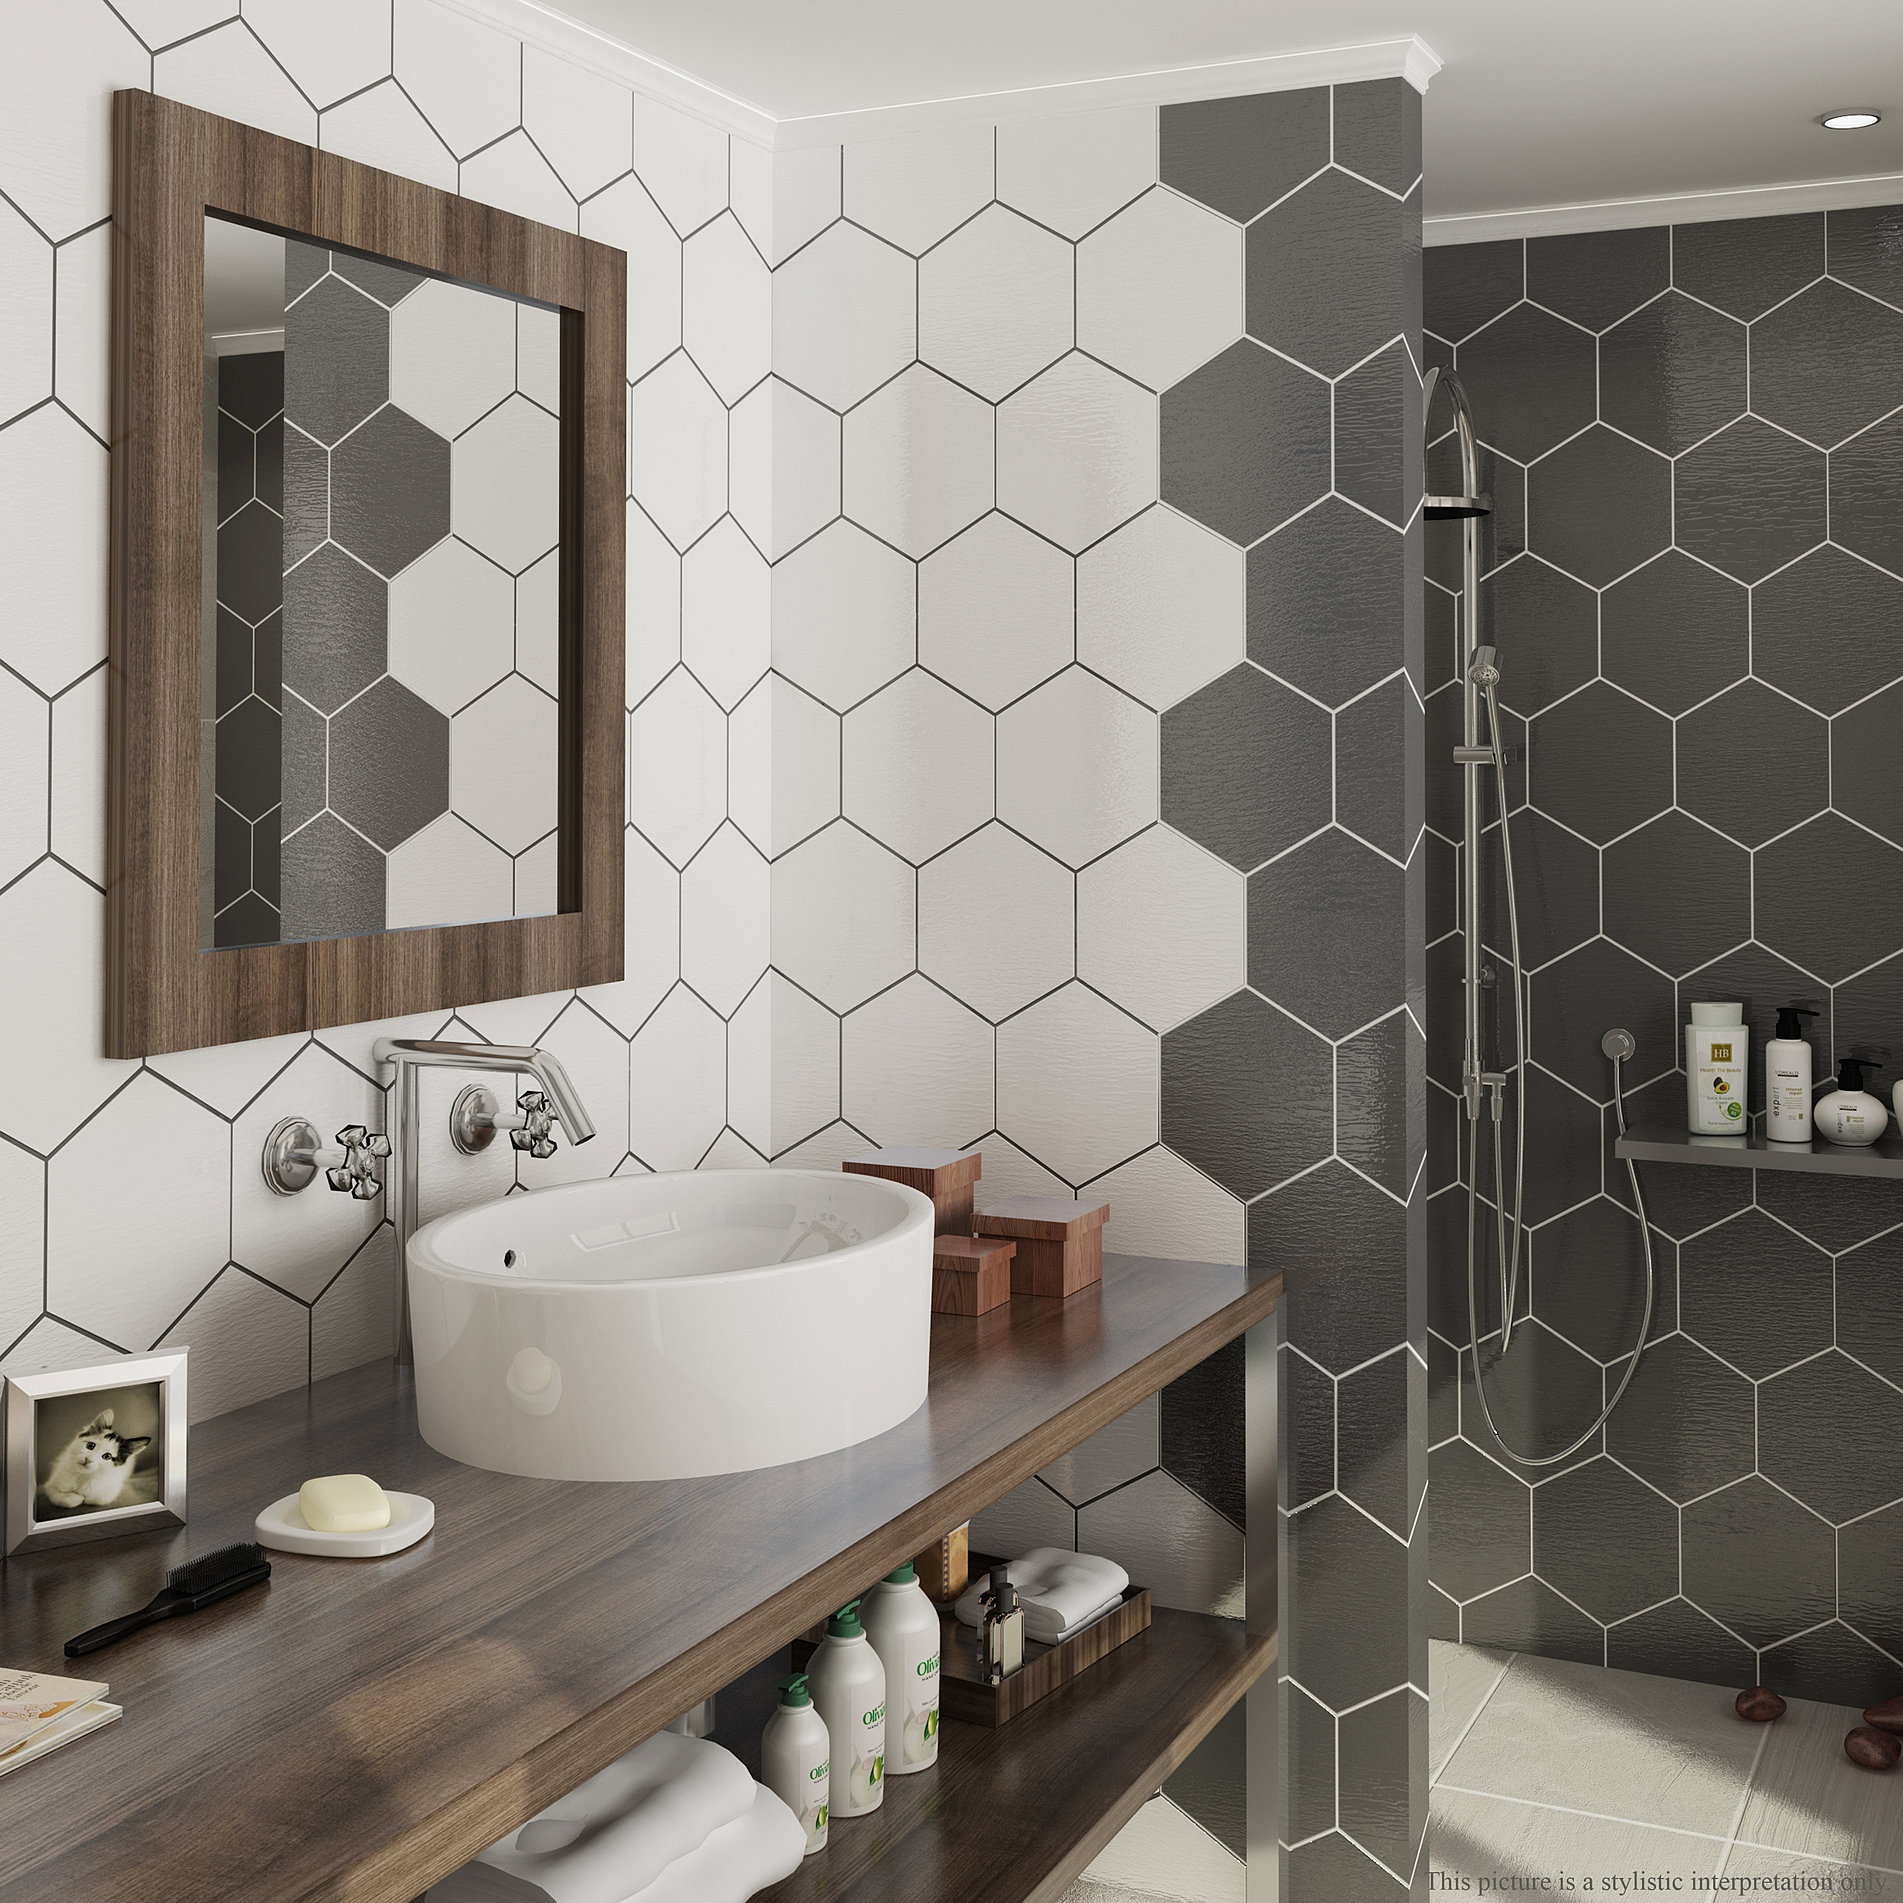 Fantastic Hexagonal Tiles Bathroom Vignette - Bathroom planner ...